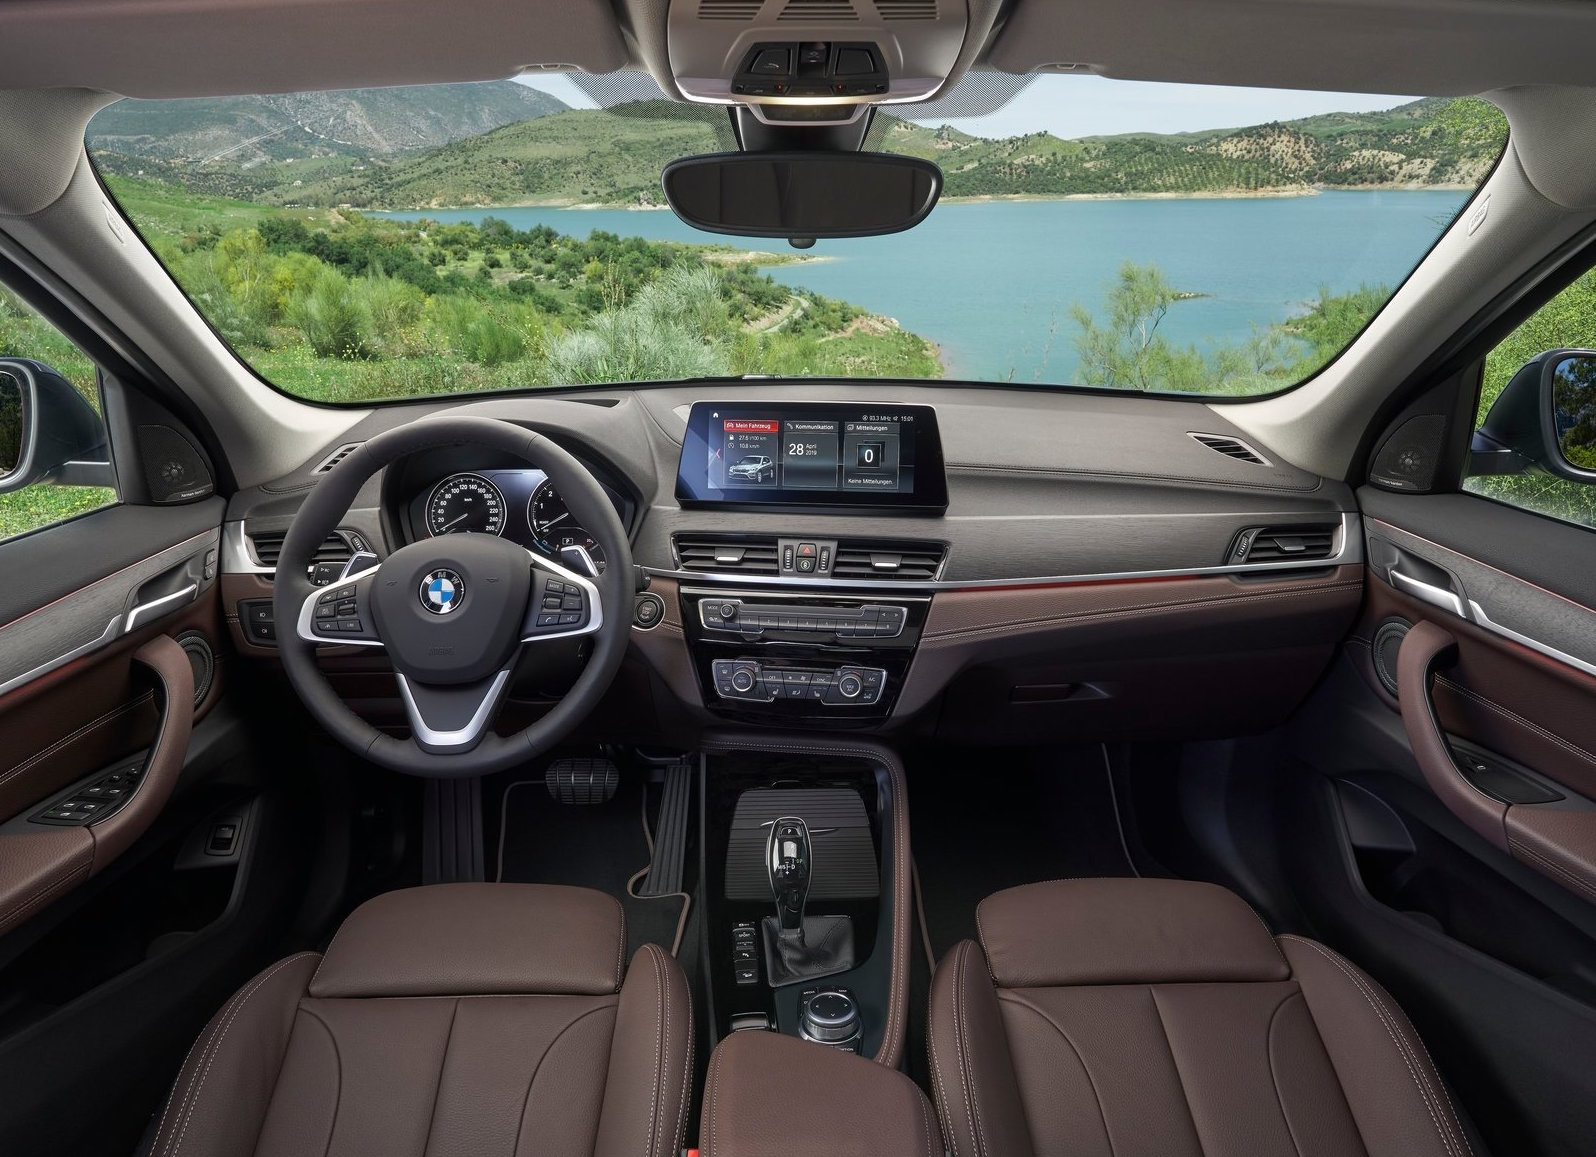 2020 Bmw X1 On Sale In Australia From 44 500 Arrives October Performancedrive